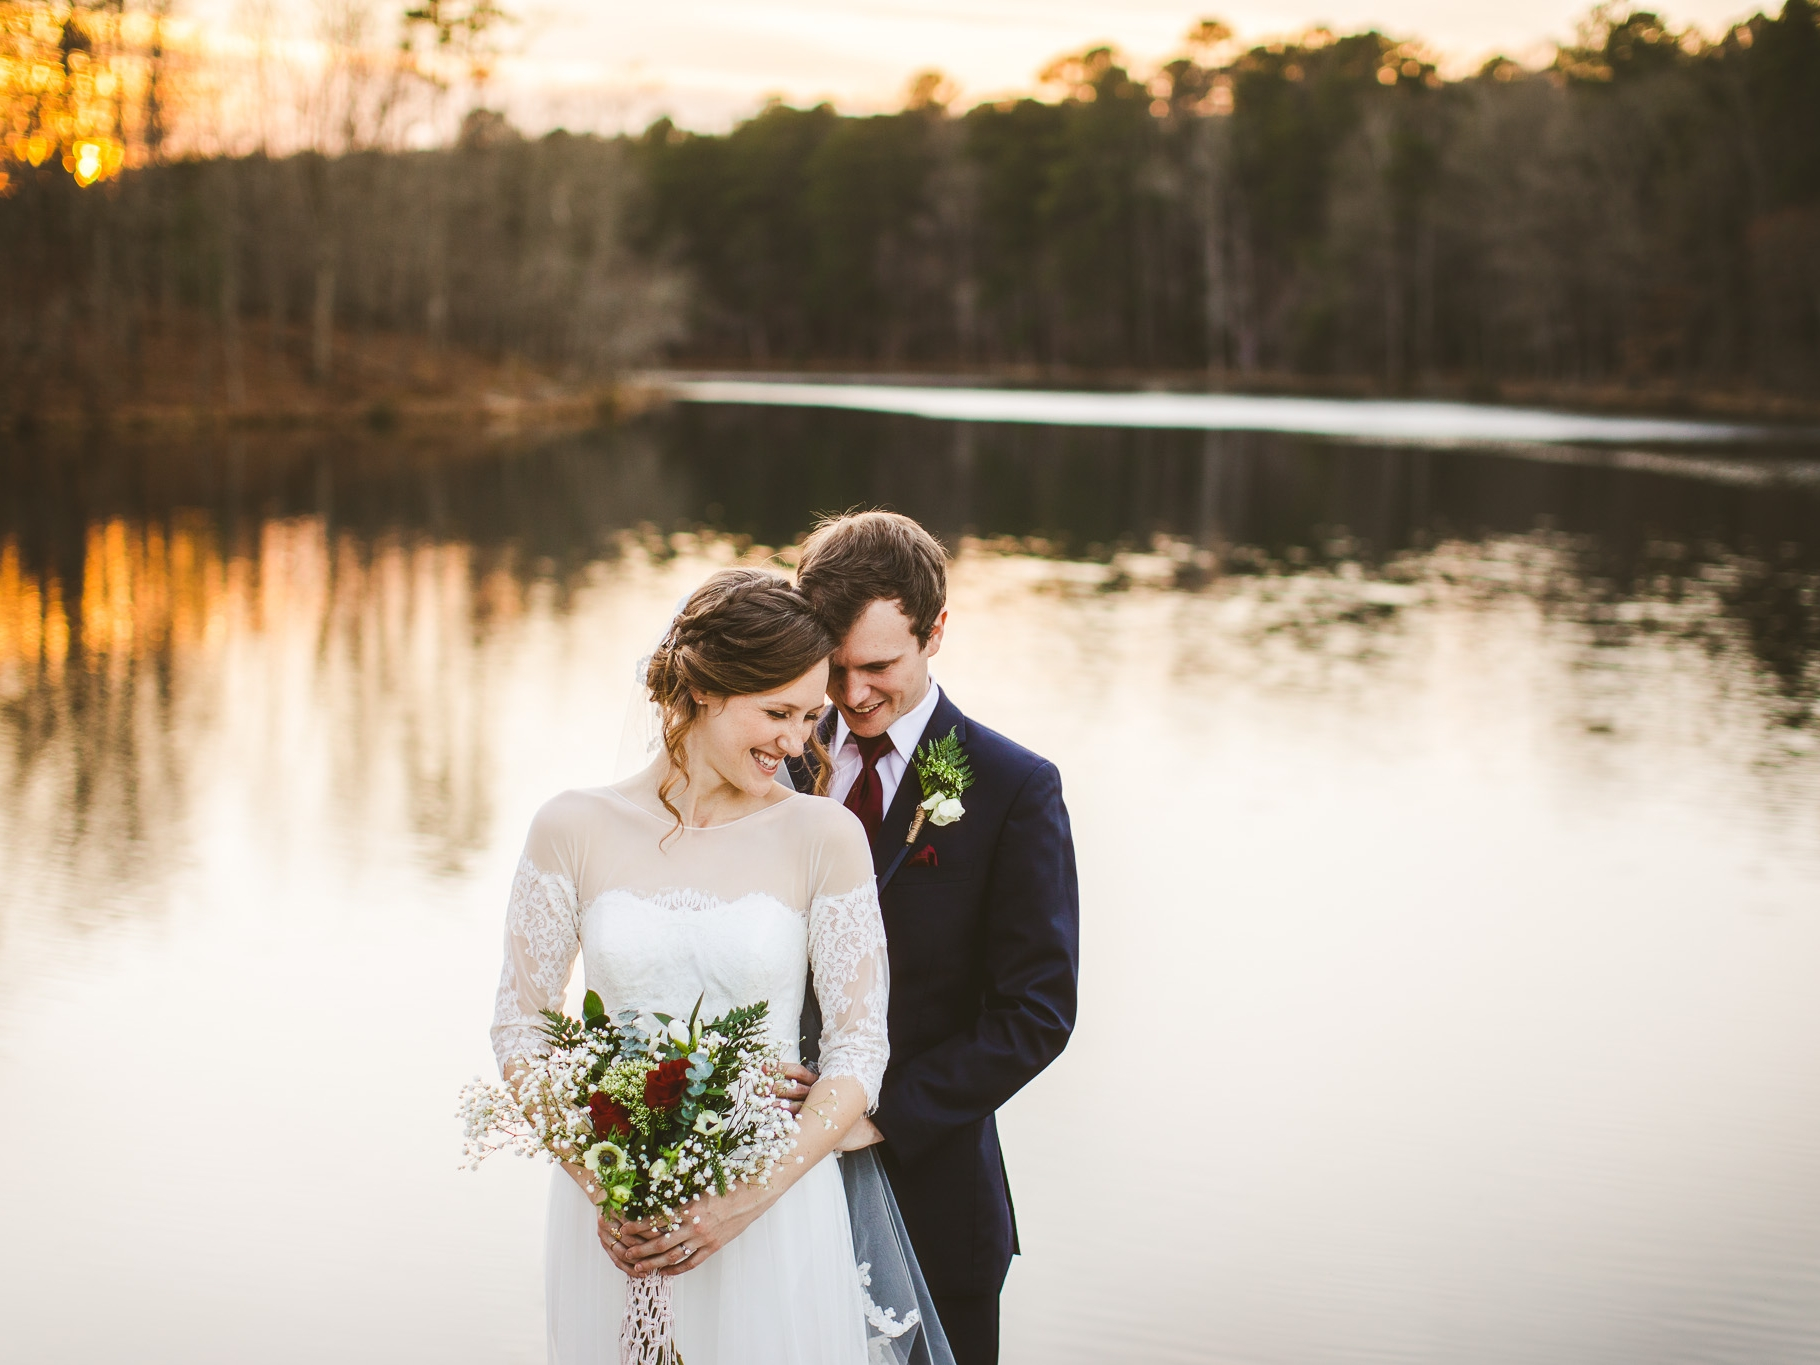 Claire & Jeff // Wedding - Durant Nature Preserve, Raleigh, NC 03.12.2018